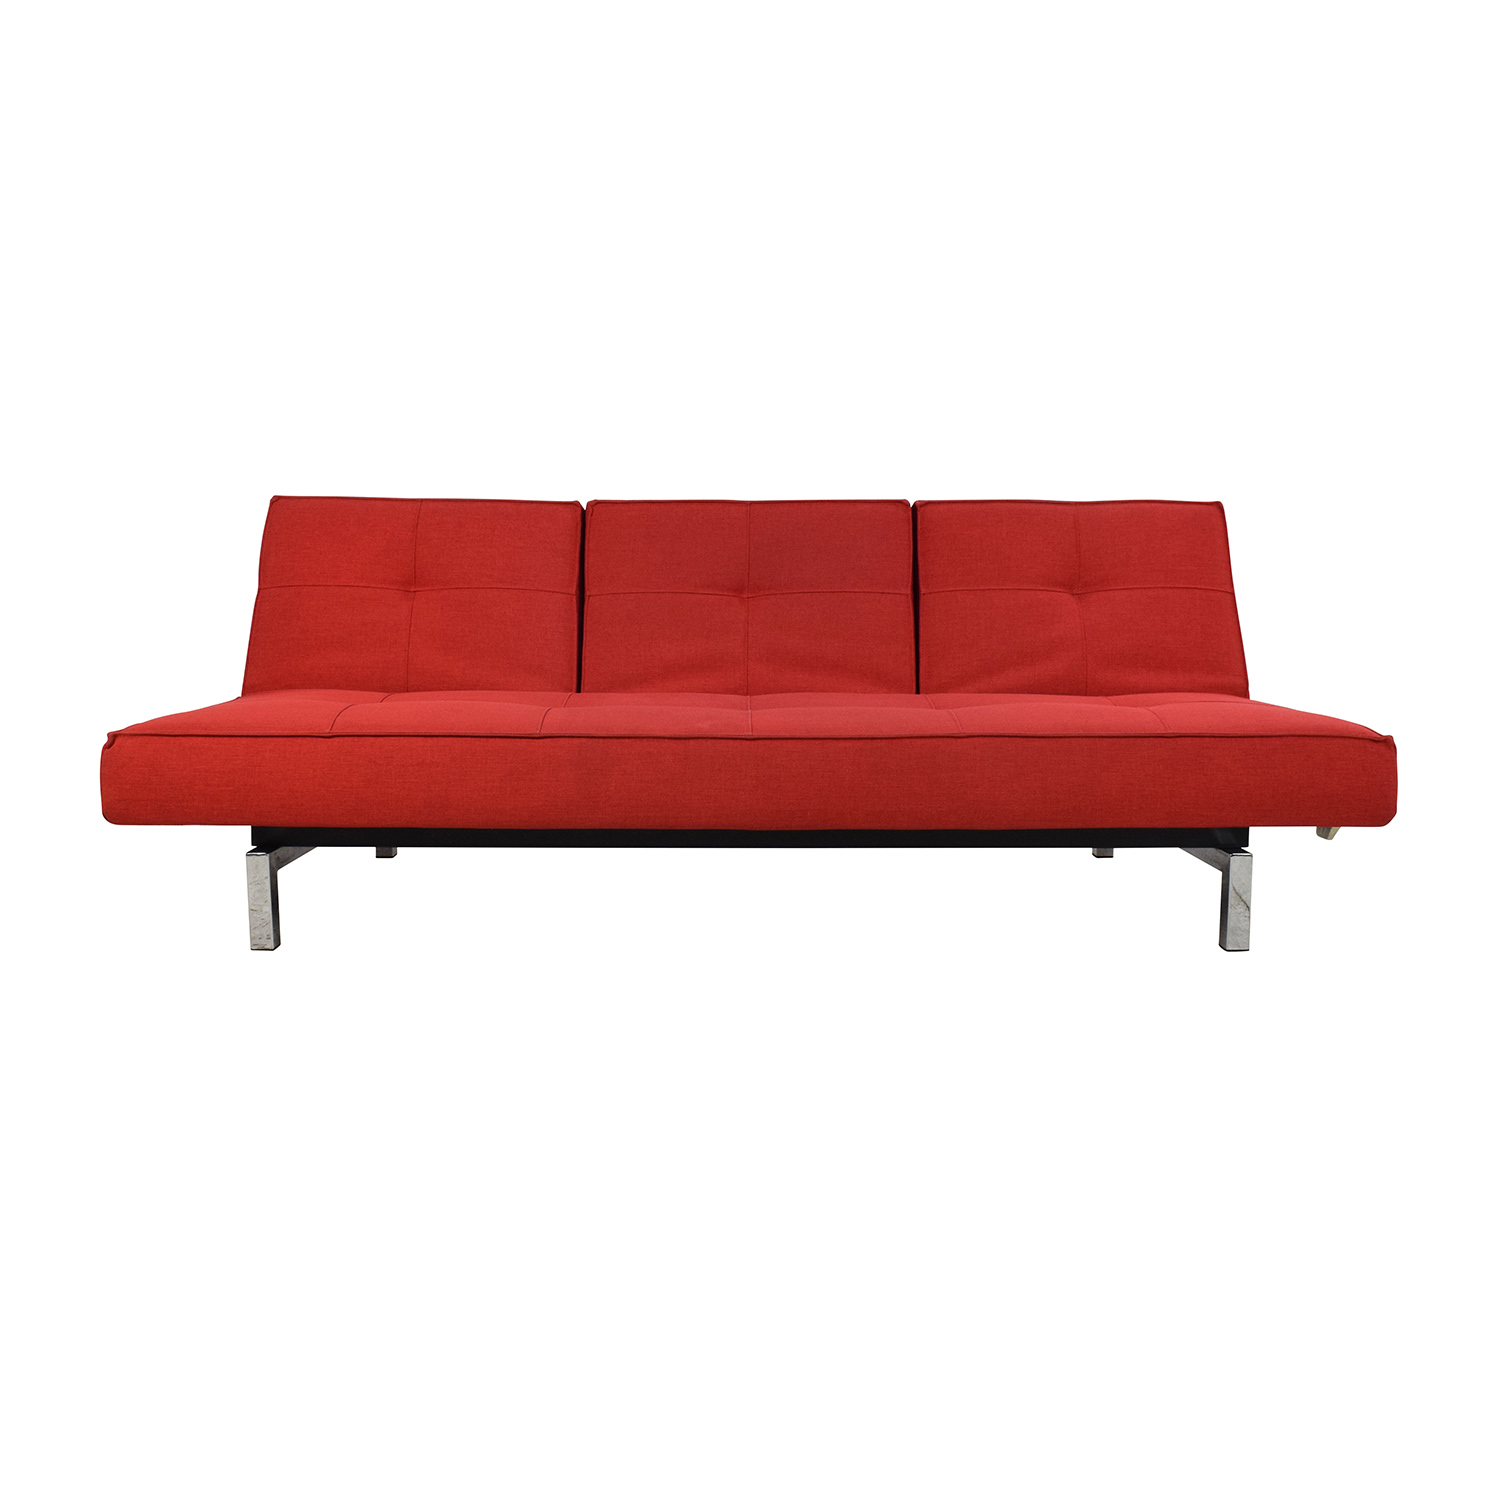 Room and Board Room & Board Eden Convertible Red Sofa discount